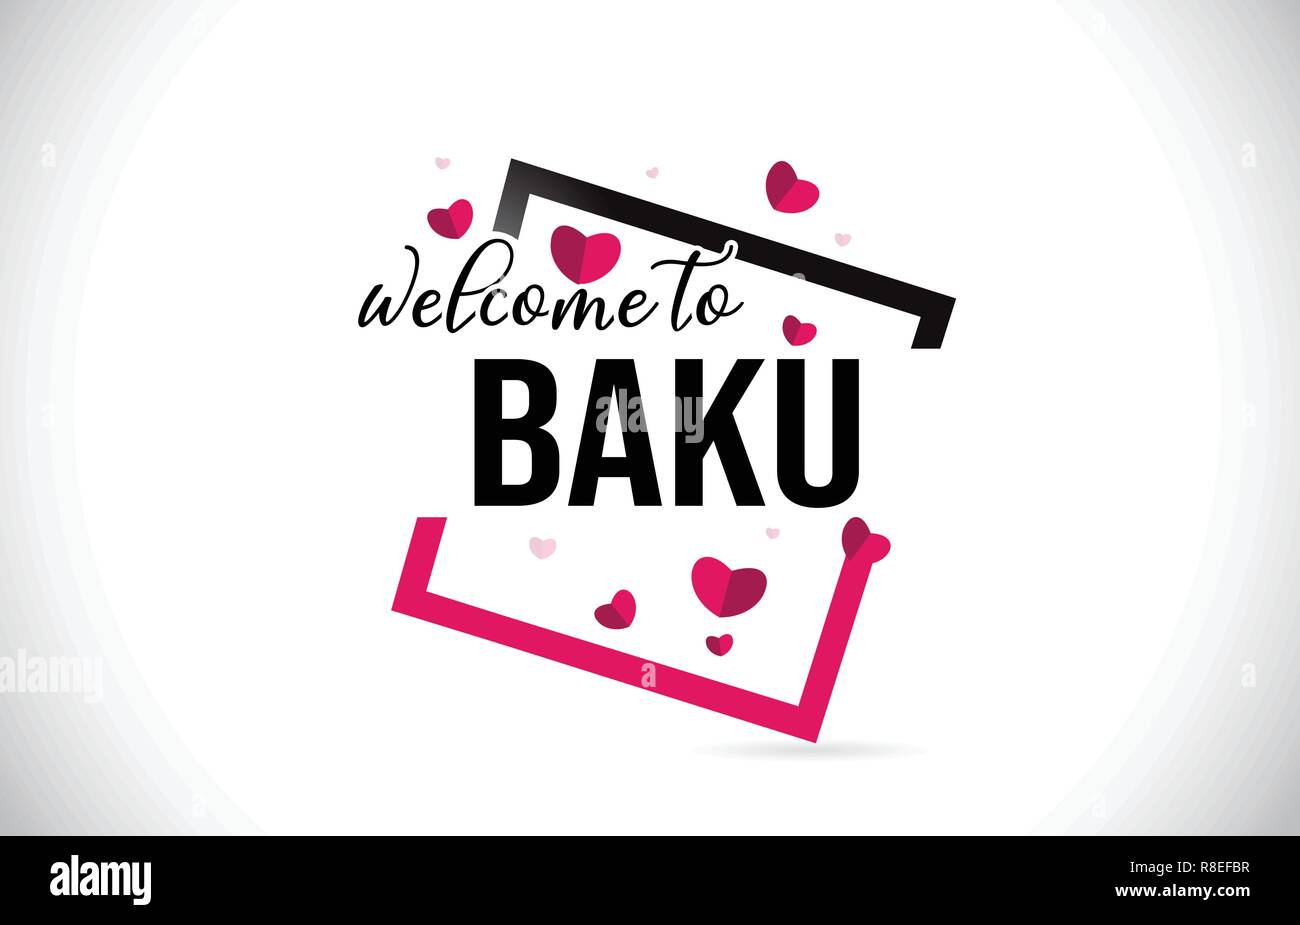 Baku Welcome To Word Text with Handwritten Font and  Red Hearts Square Design Illustration Vector. - Stock Vector